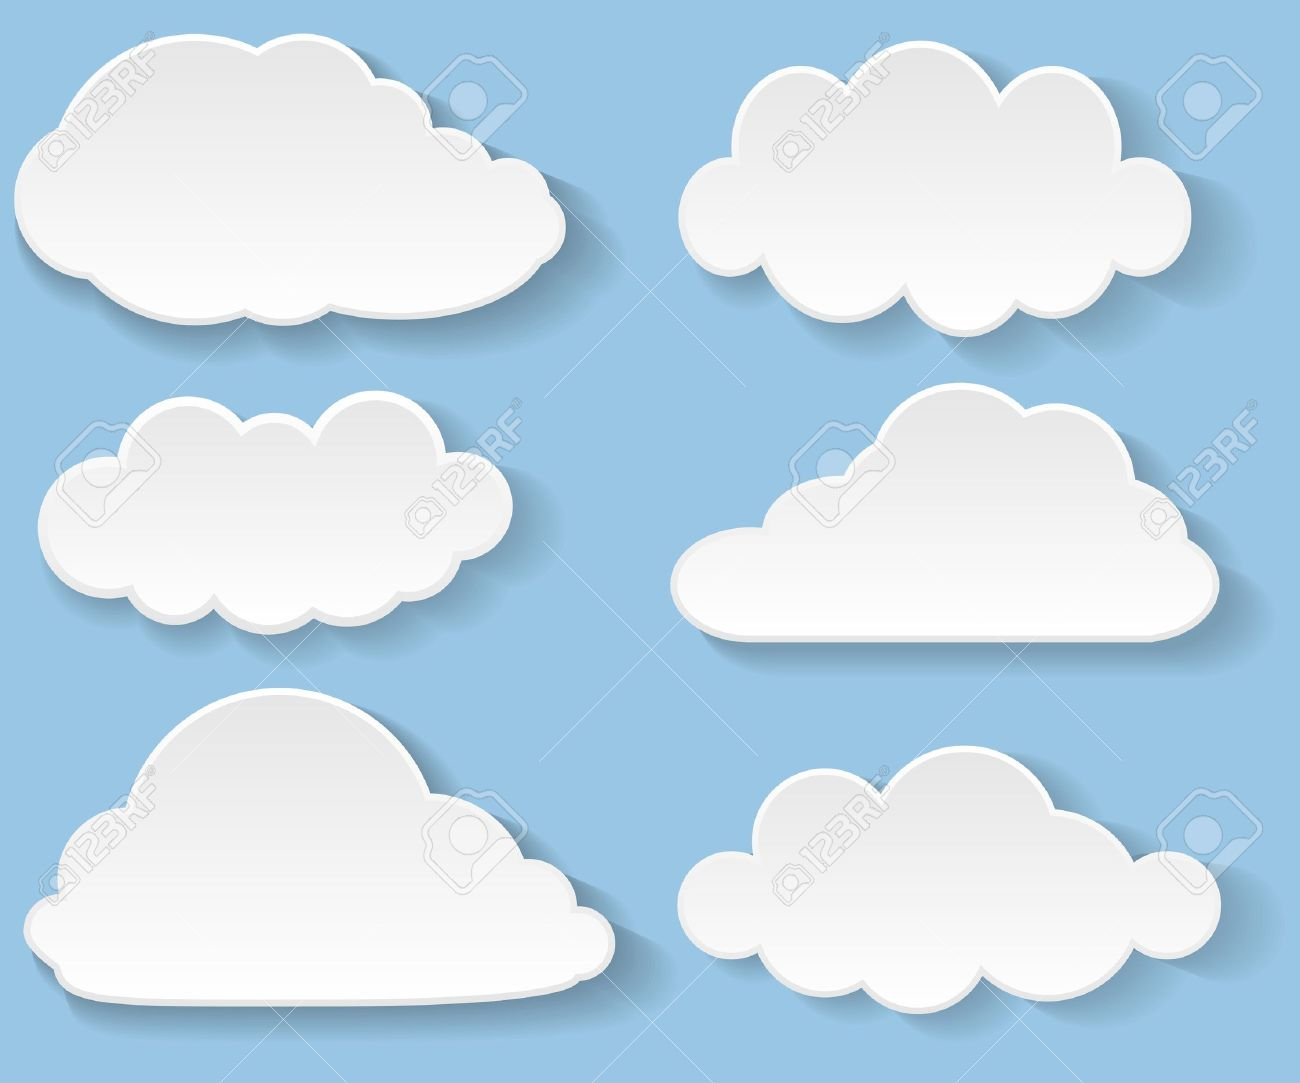 Illustration messages in the form of clouds Standard-Bild - 18816663